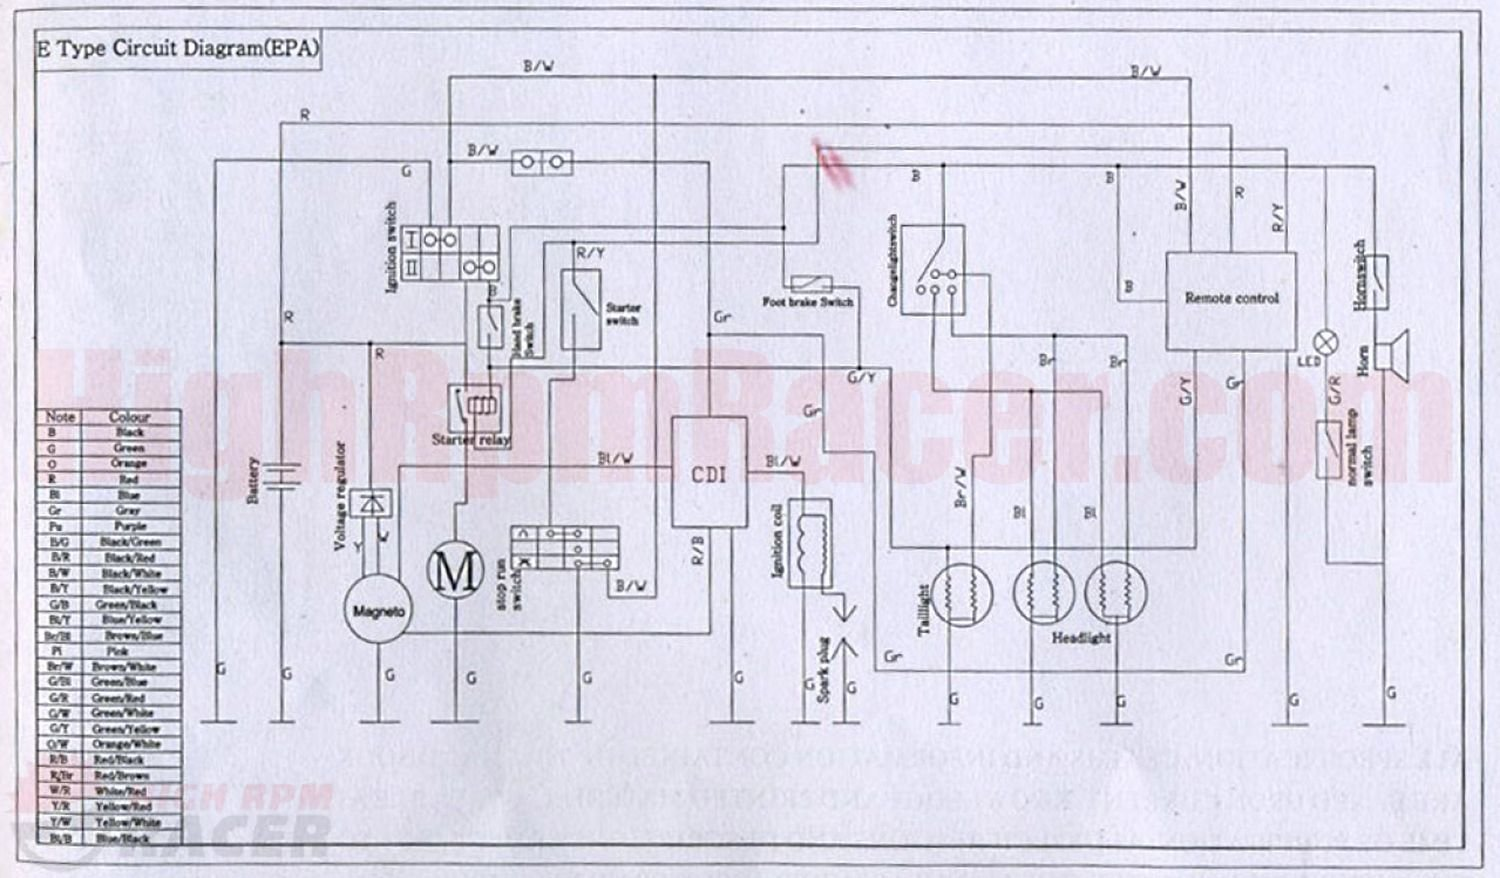 falcopy110_wd chinese wiring diagram quad chinese wiring diagrams \u2022 wiring alpine cde 110 wiring diagram at crackthecode.co